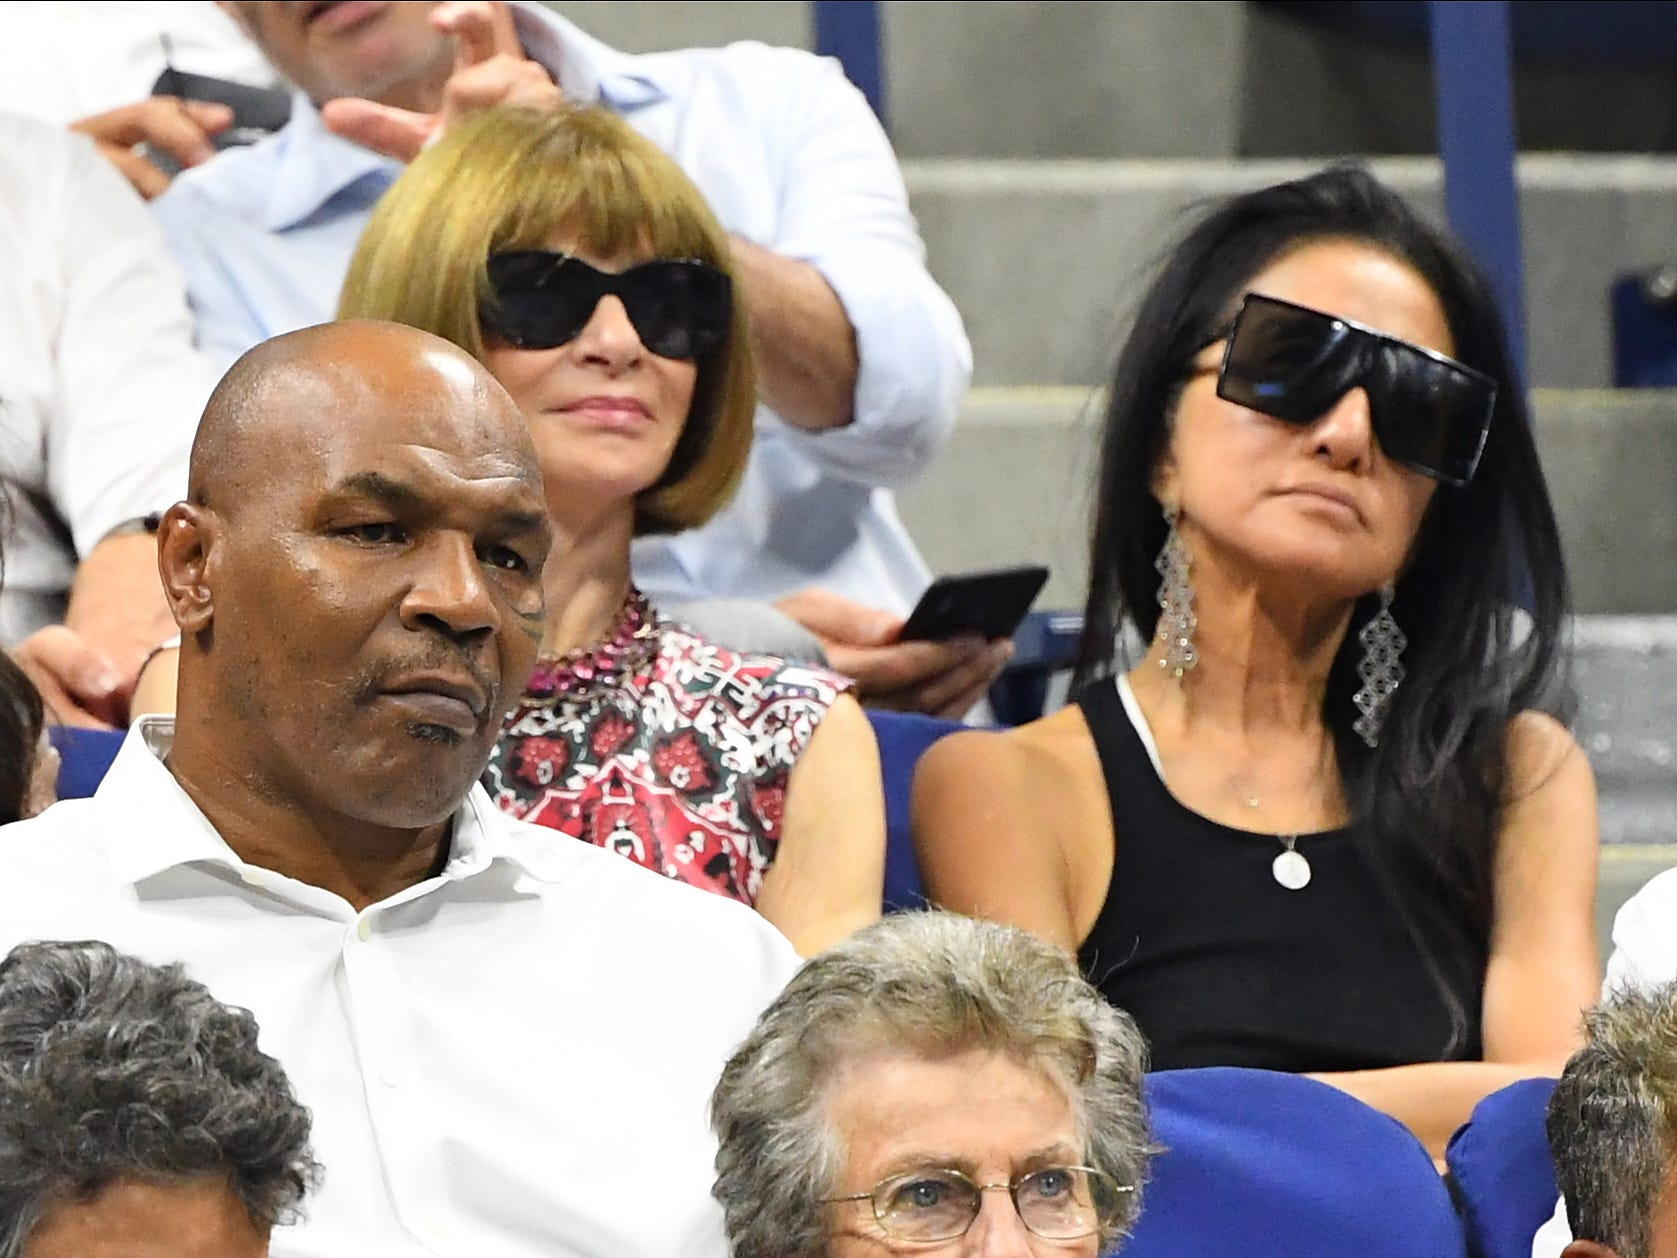 Mike Tyson (left), Anna Wintour (middle) and Vera Wang (right) watch the matches on Day 1 of the US Open.